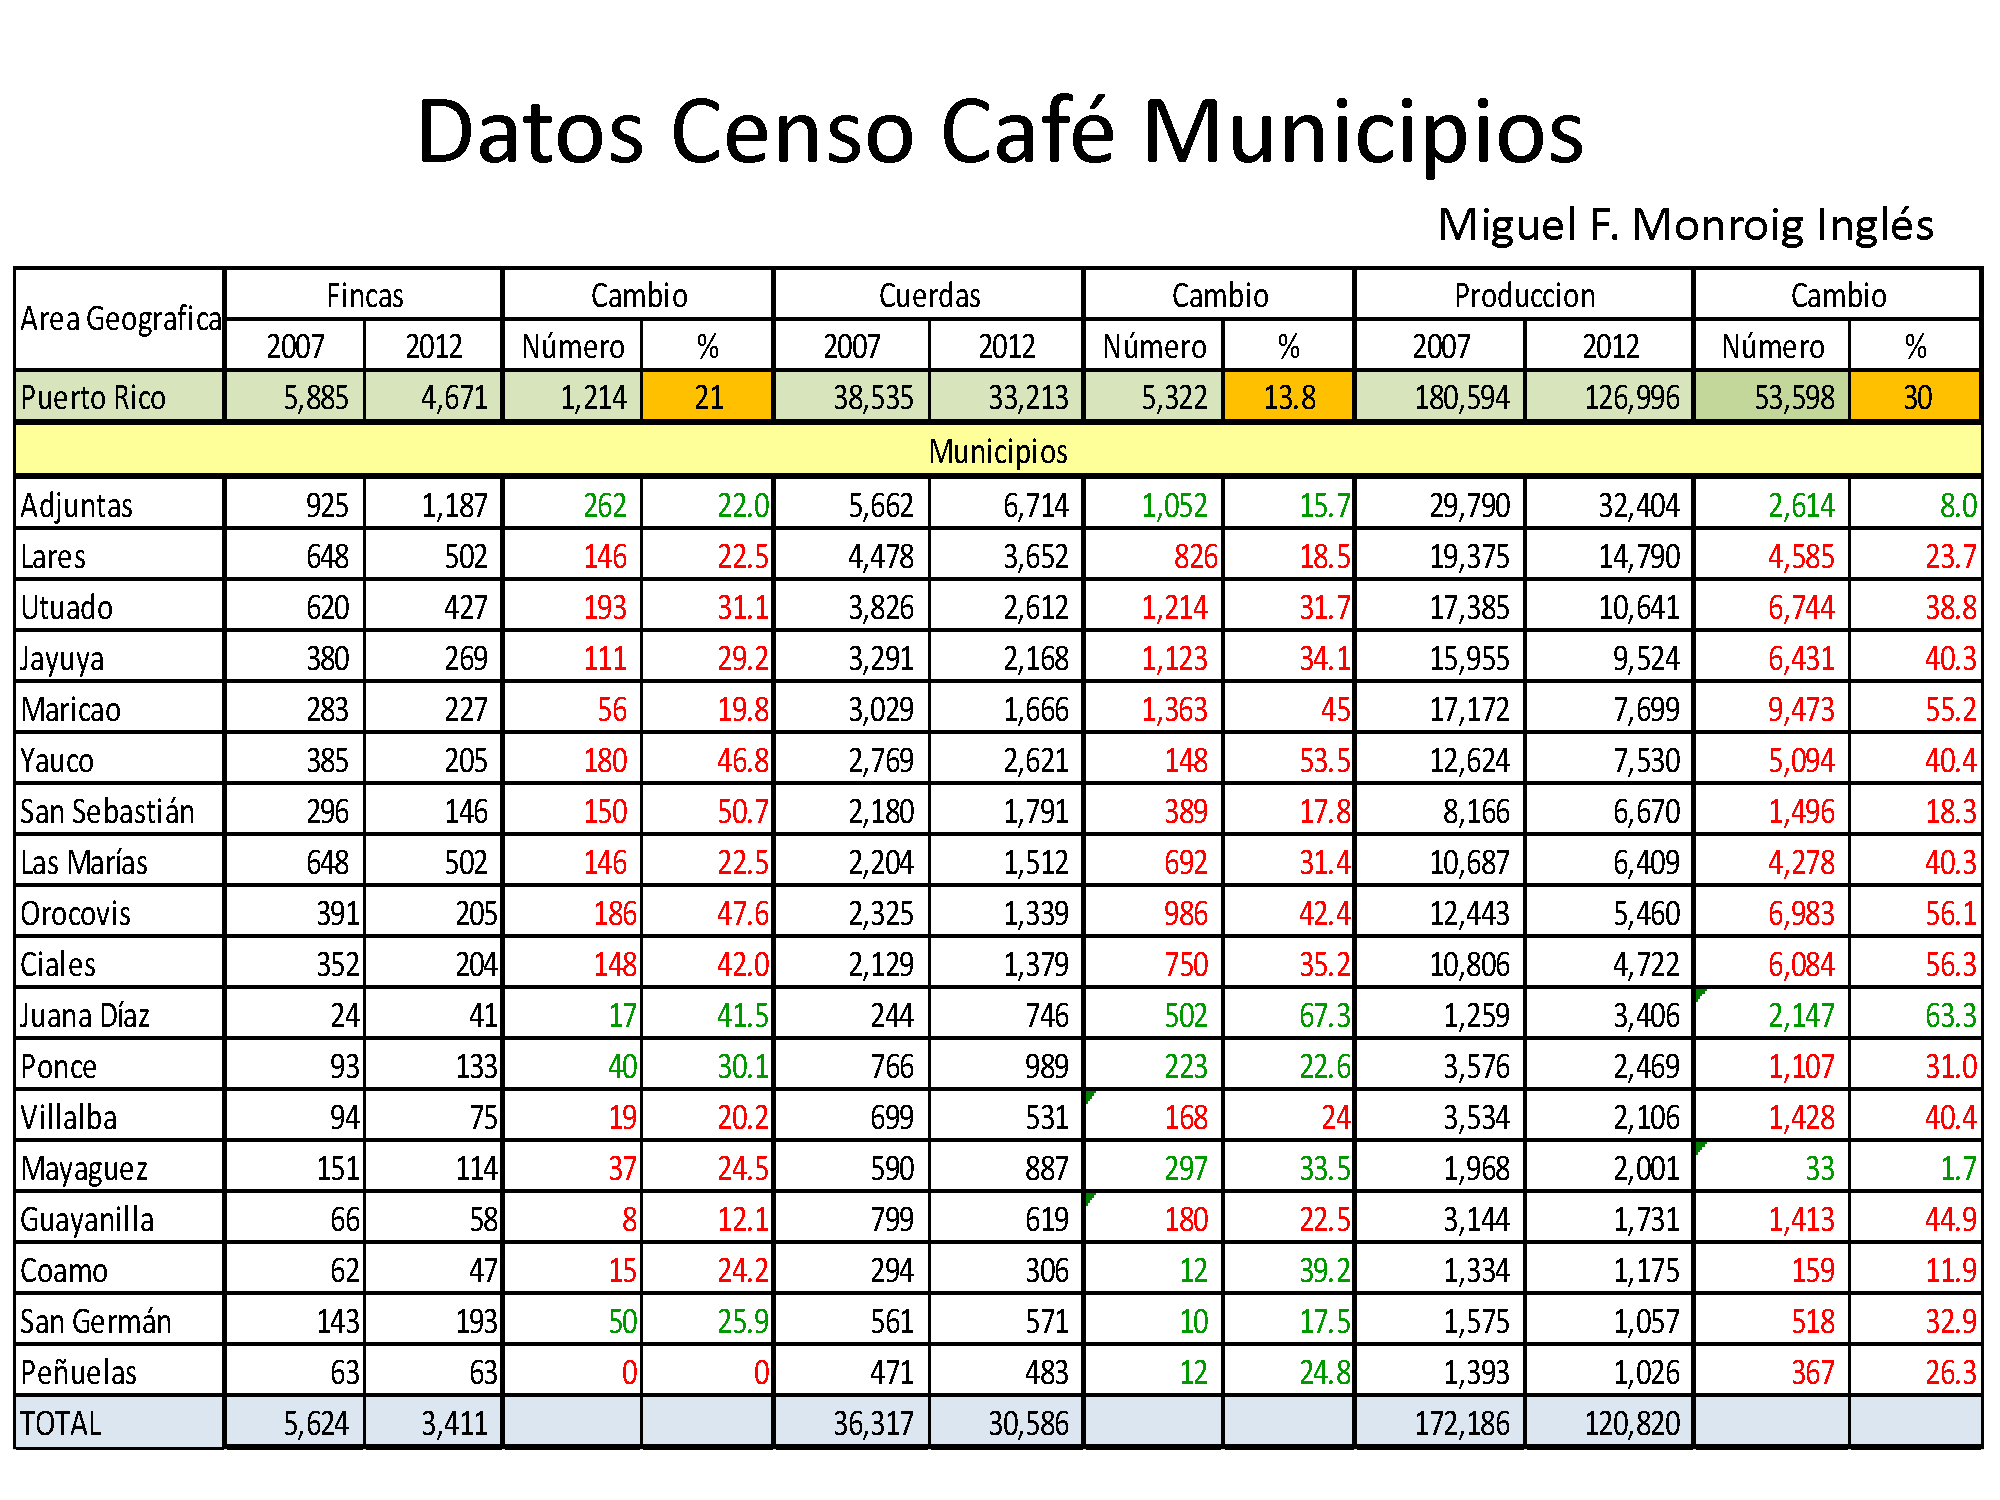 Datos Censo Federal Agricola Cafe 2012